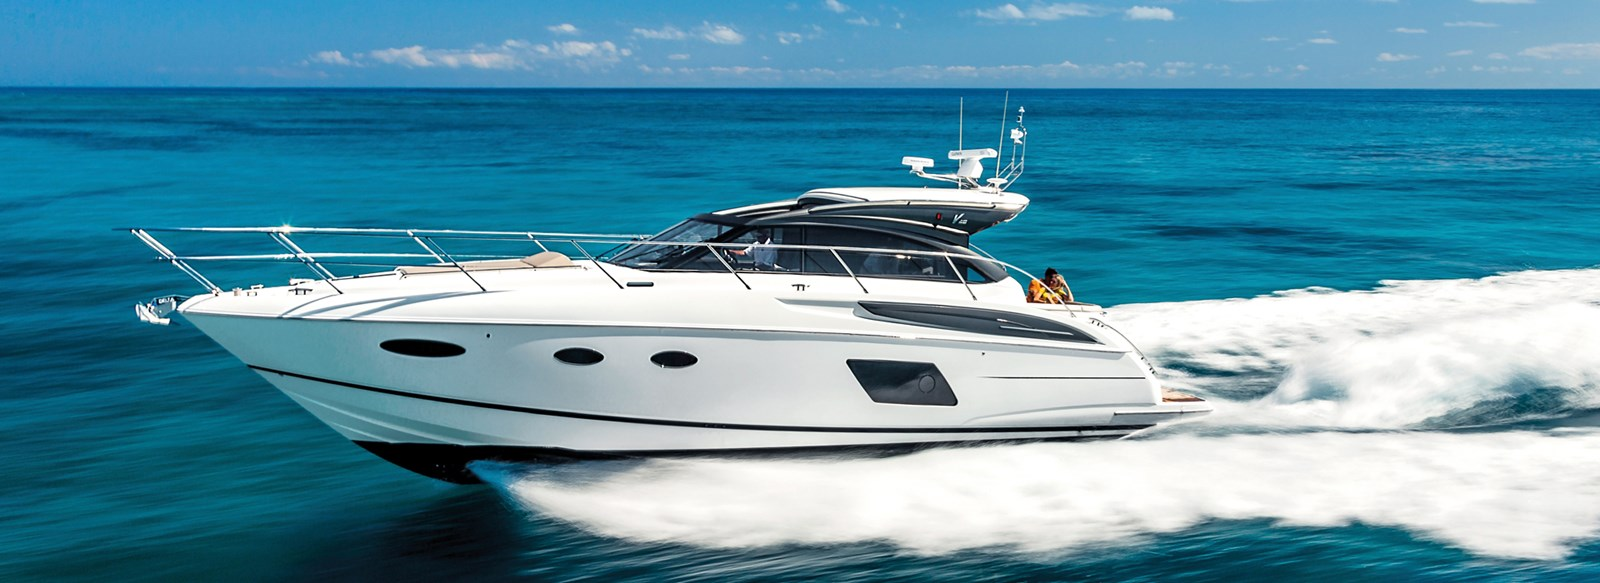 New Princess V48 Express Yachts For Sale